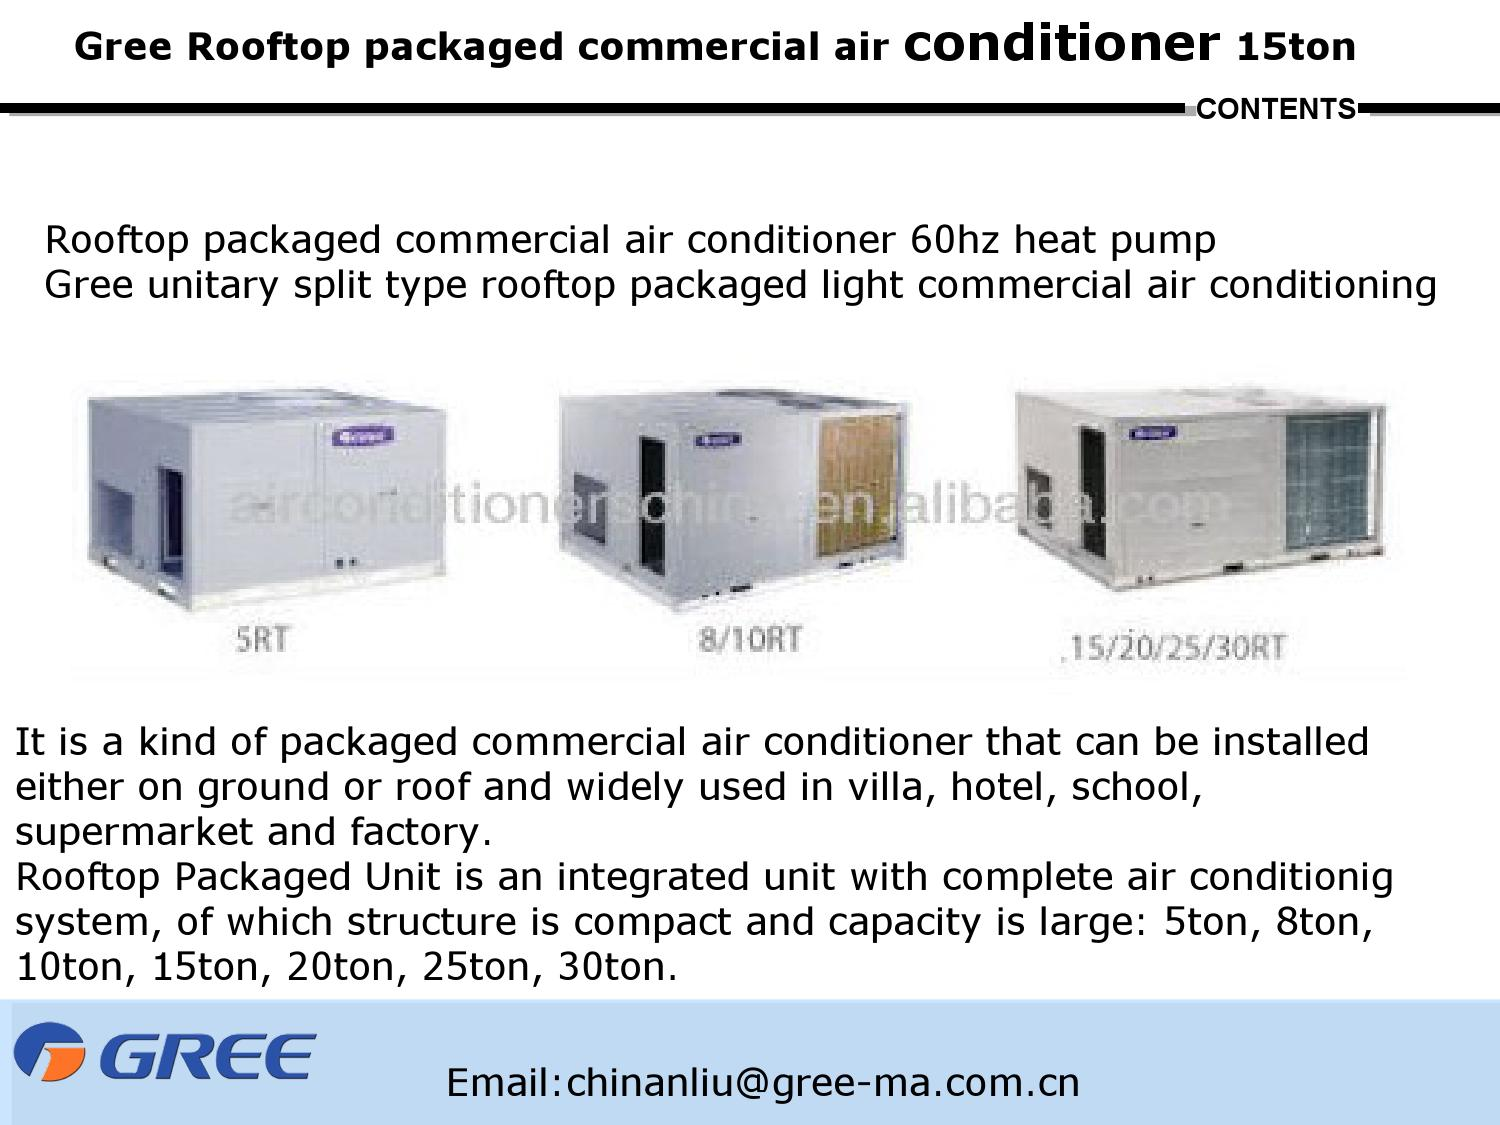 gree rooftop packaged commercial air conditioner